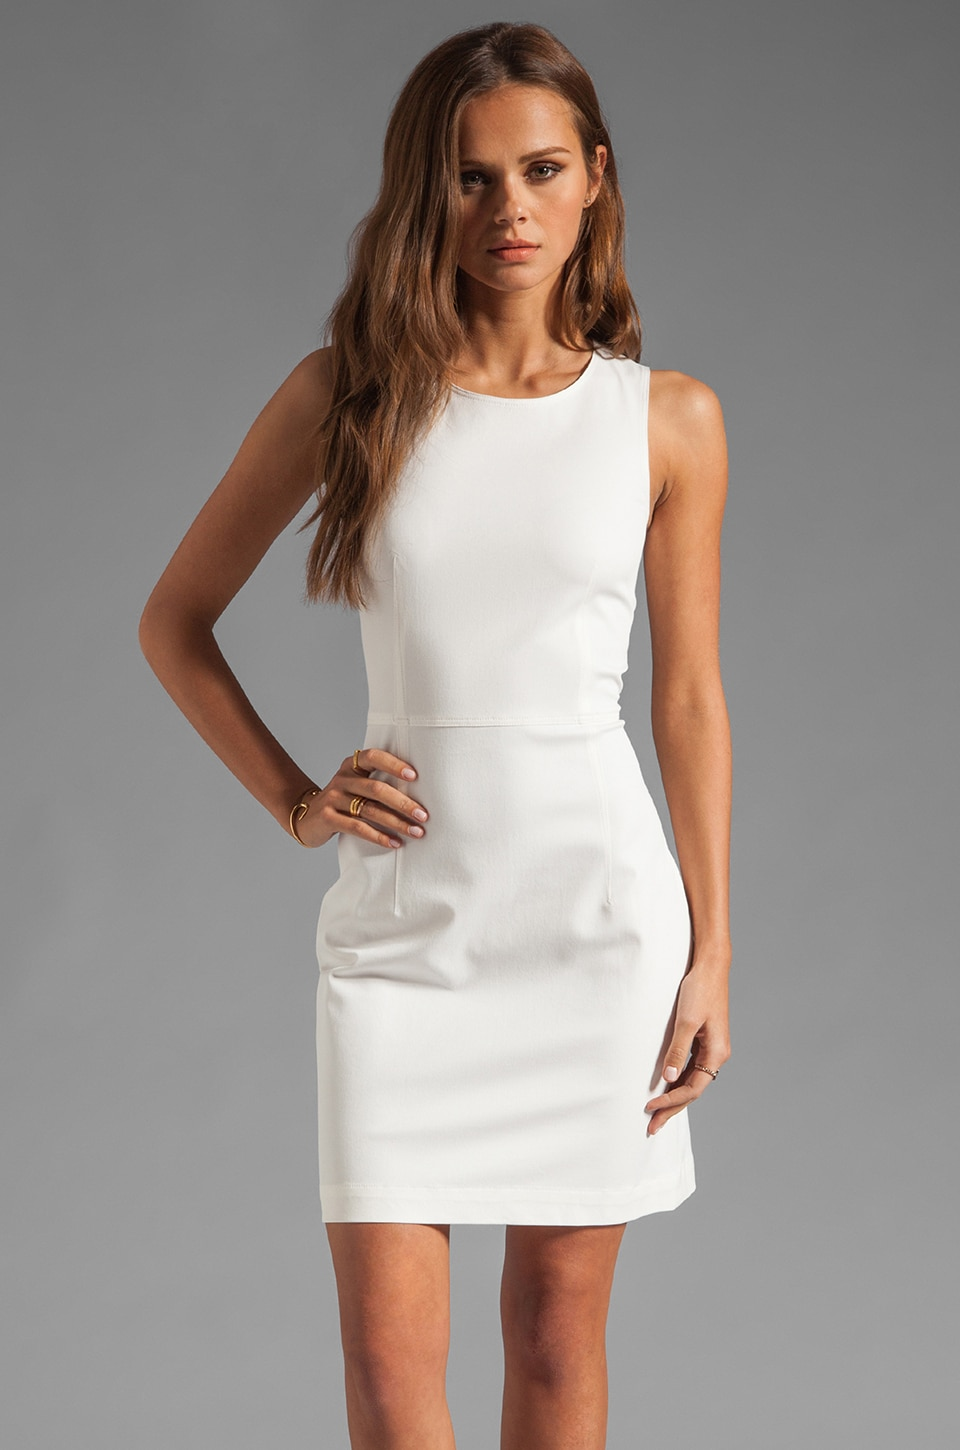 Theory Bistretch Diamita Dress in White